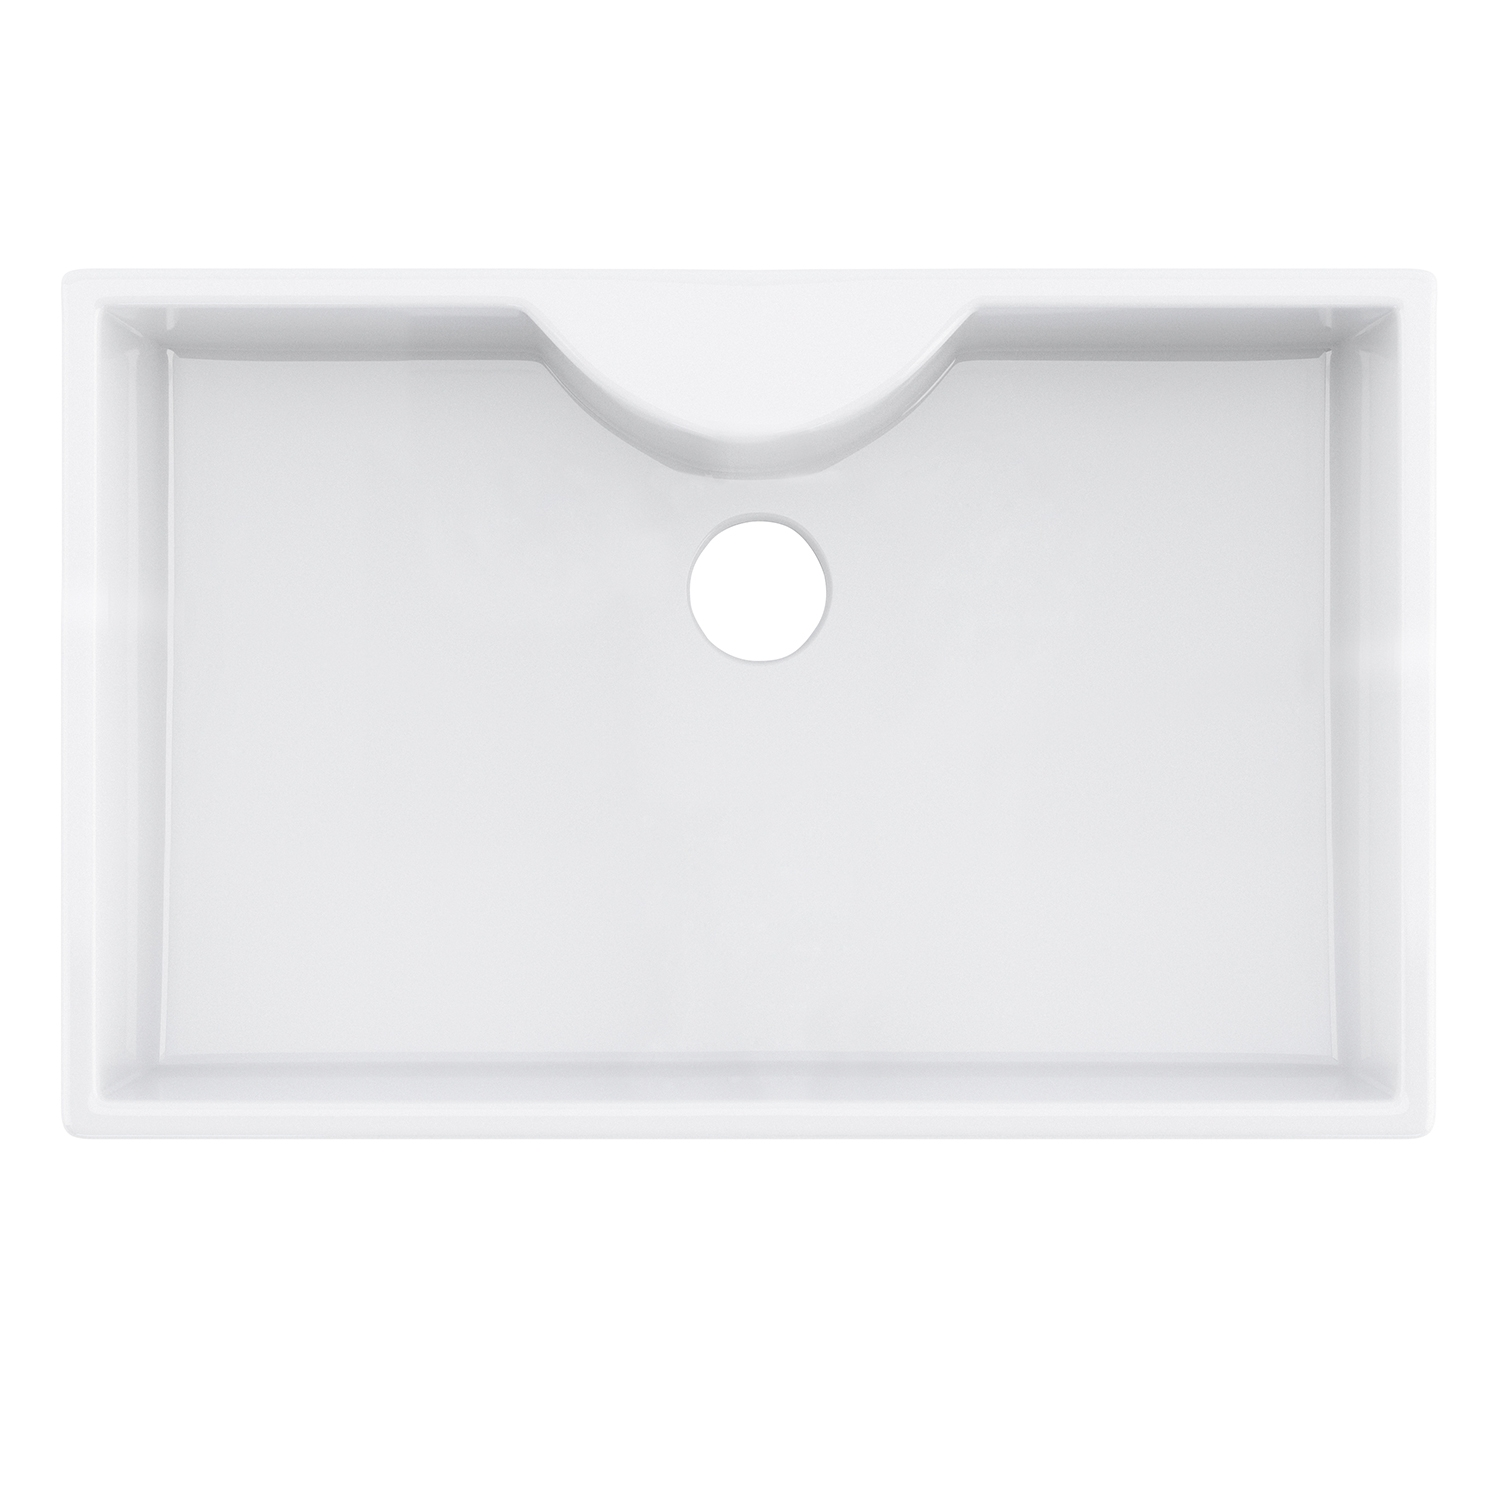 Premier Oxford Ceramic Kitchen Sink, 1.0 Bowl, White-1